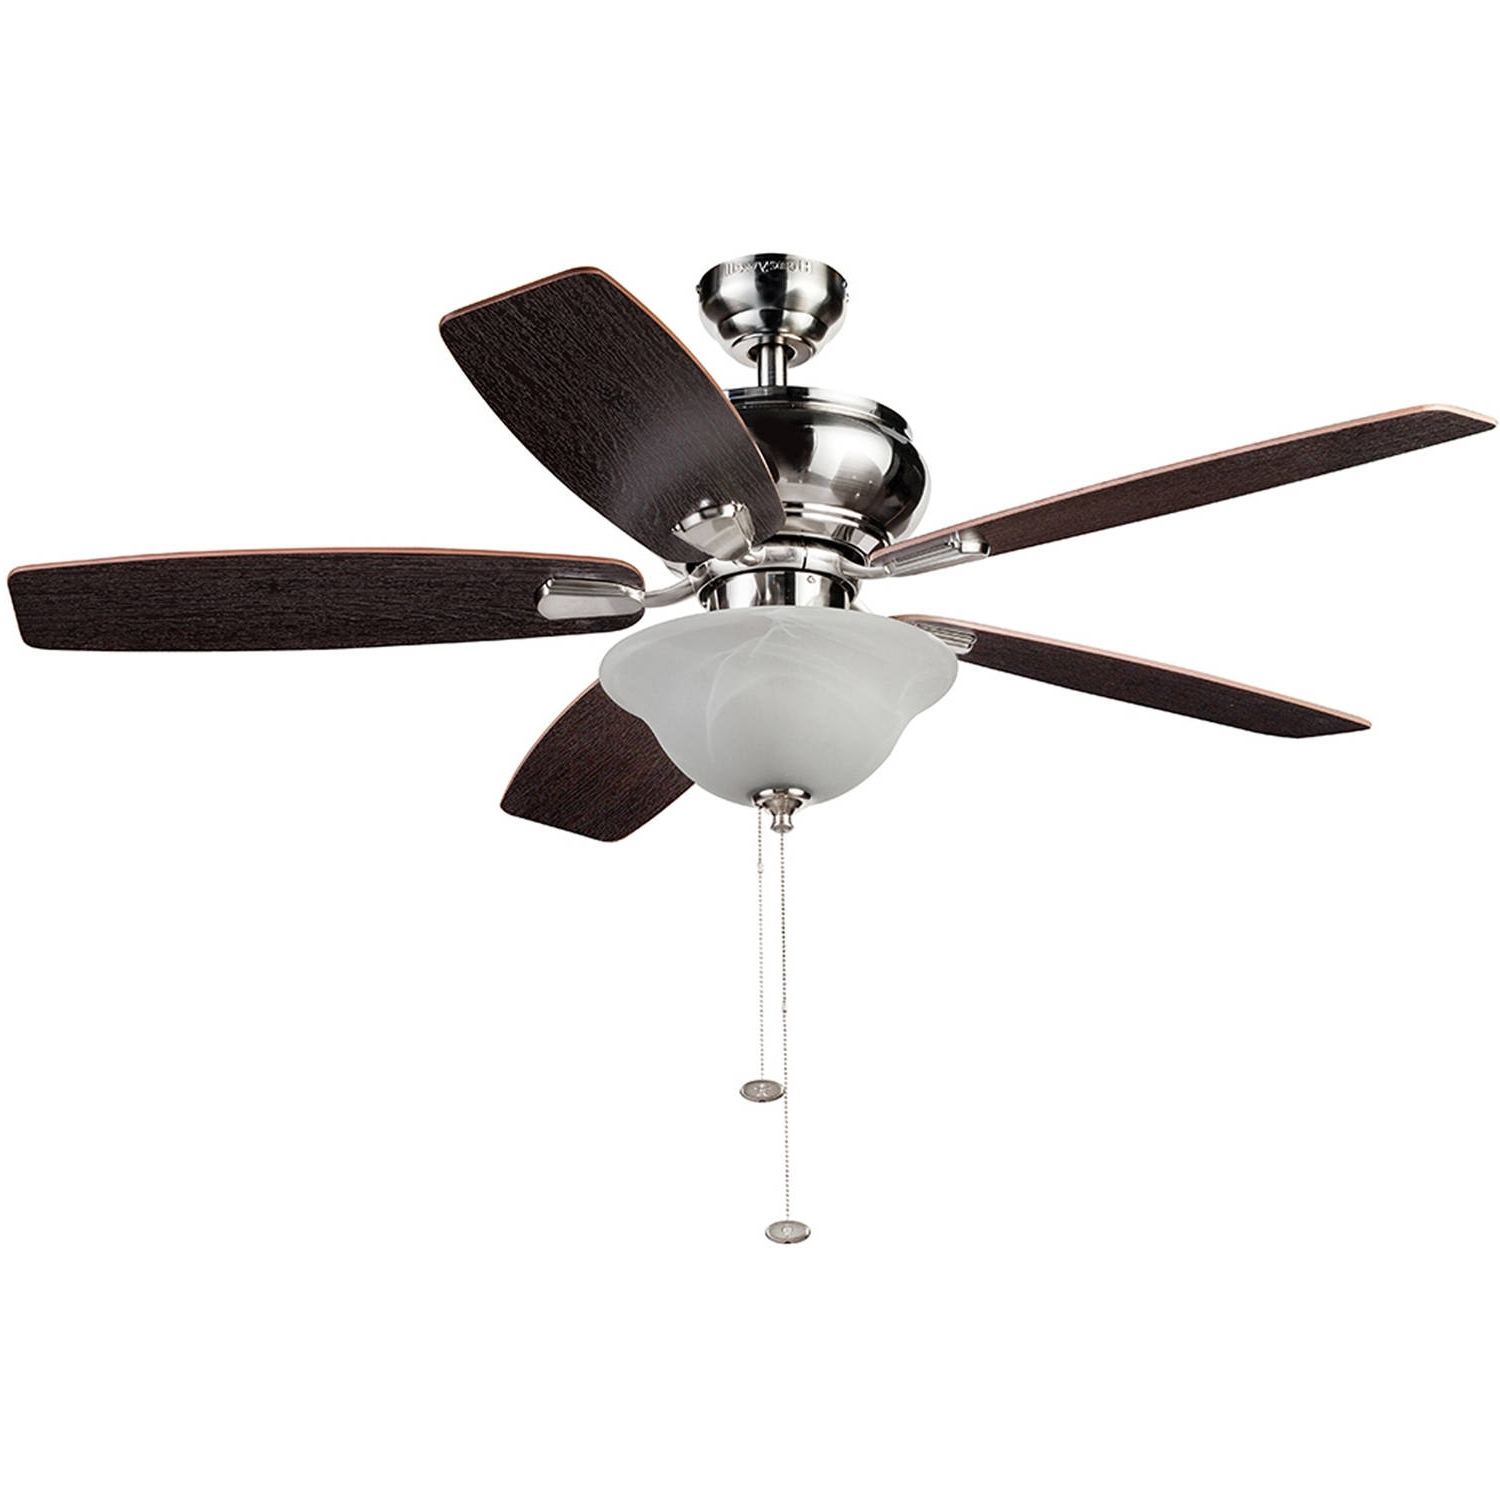 Most Recent Outdoor Ceiling Fans With Lights At Walmart With Regard To Ceiling Fans : Walmart Ceiling Fans With Lights Menards Light (View 10 of 20)